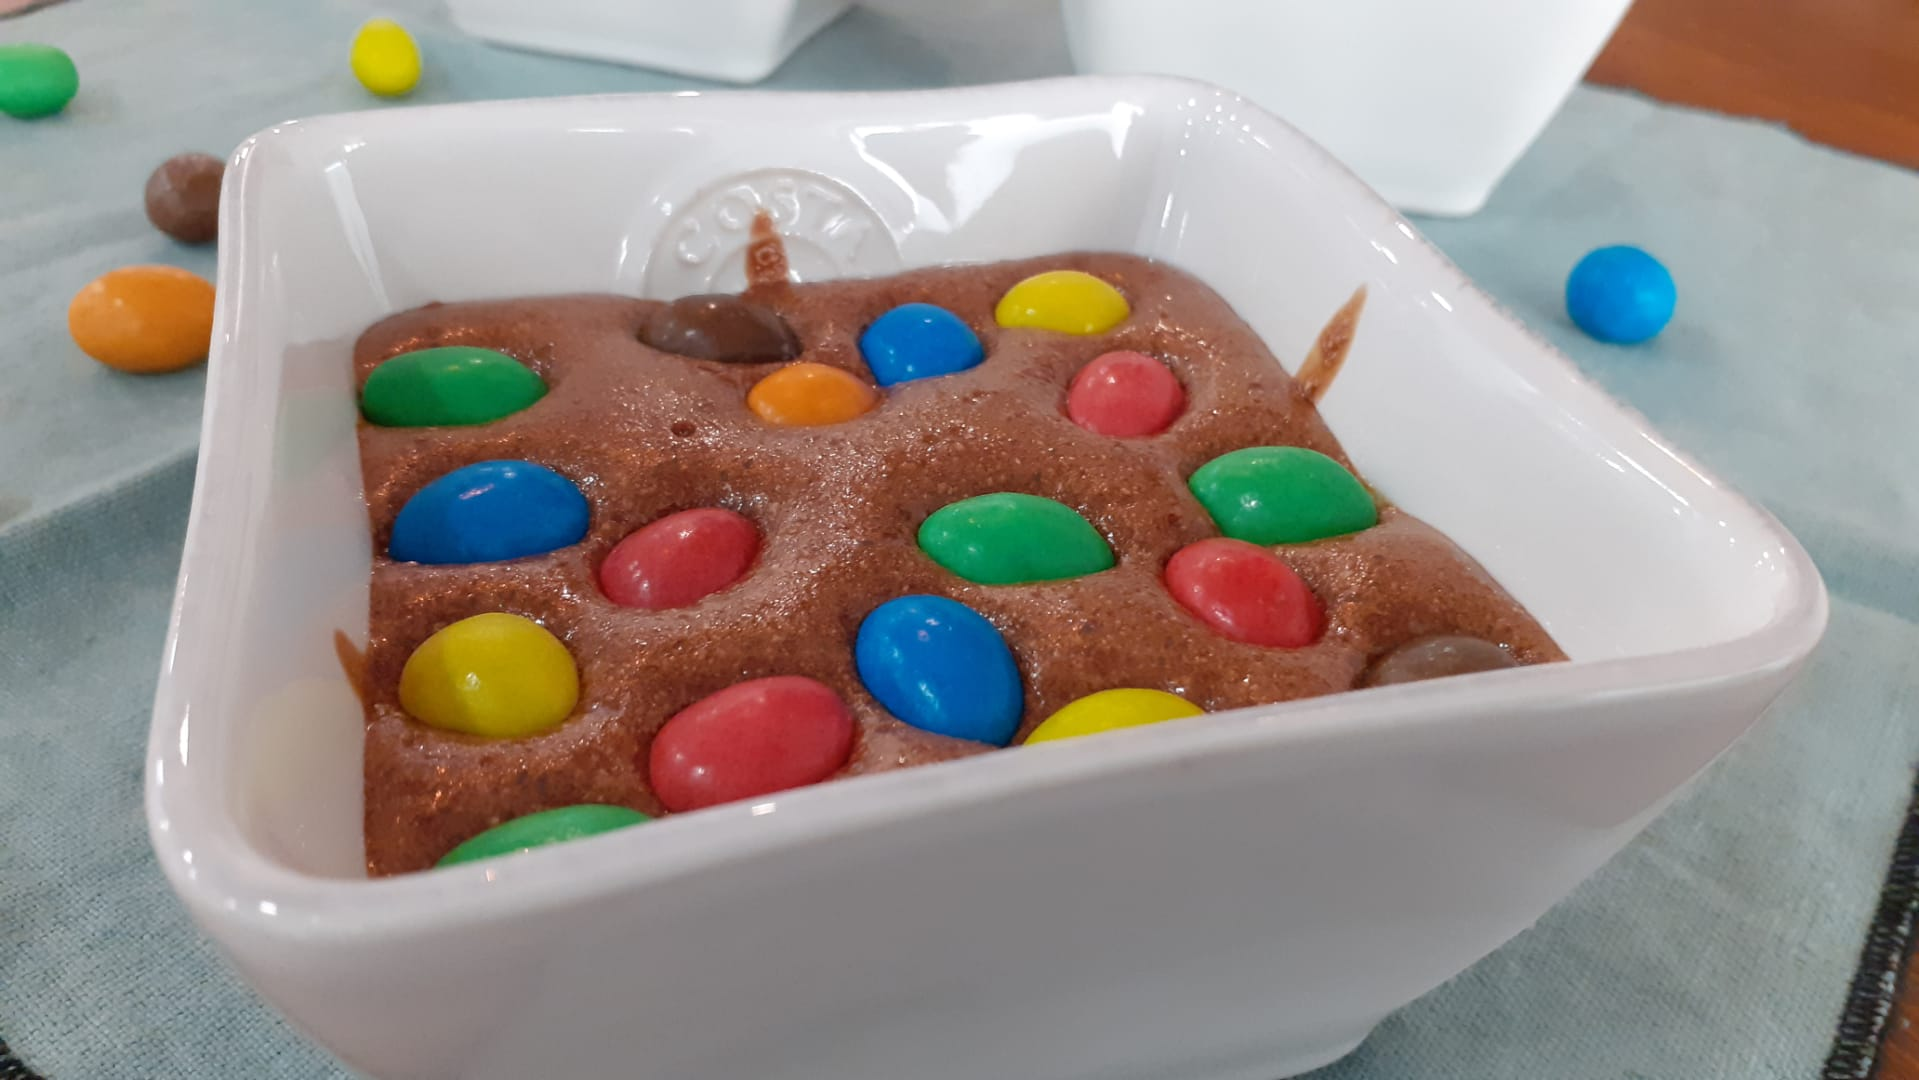 Mousse de chocolate com M&M's